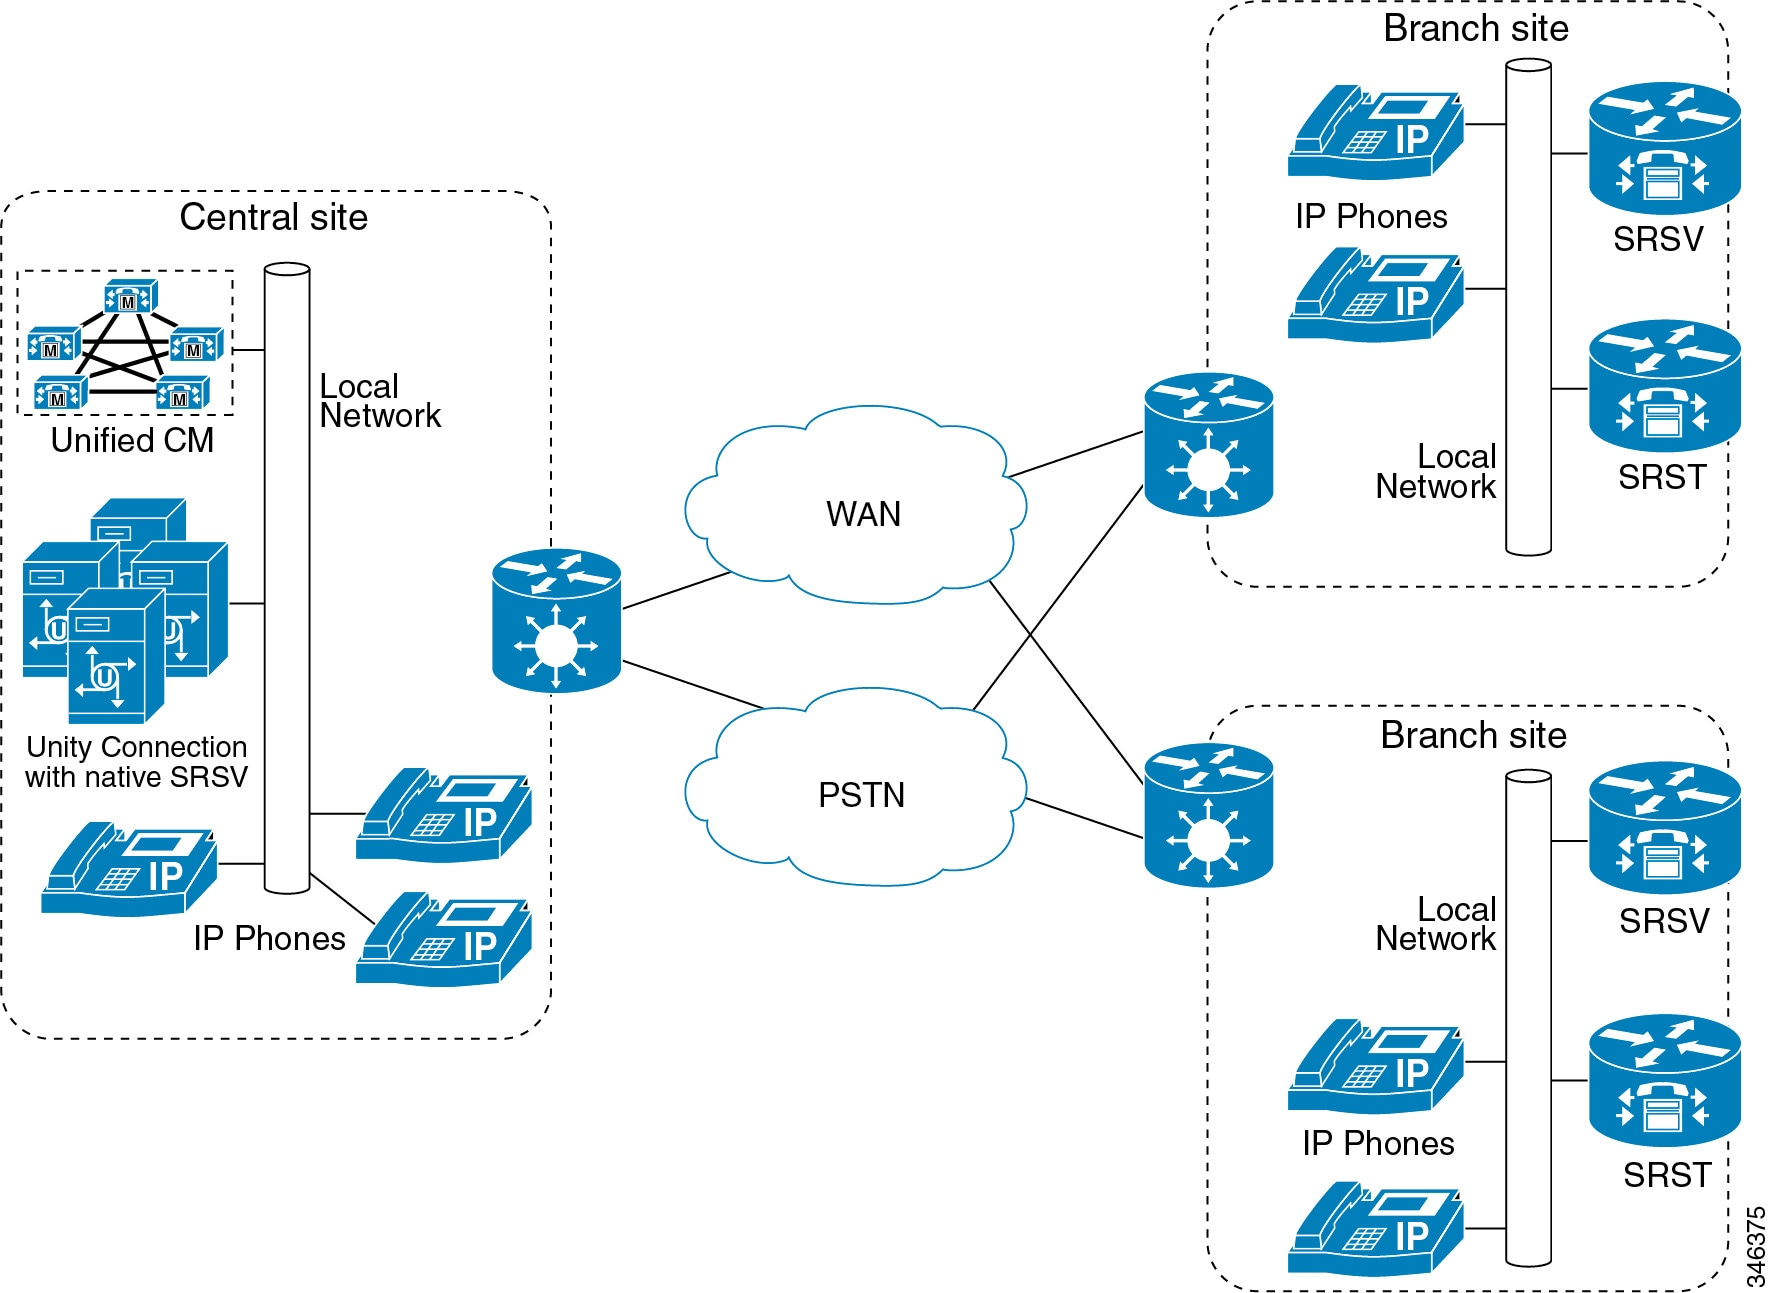 Cisco Collaboration System 11x Solution Reference Network Designs Electrical Help Needed Wiring A Light Fitting Detailing World Figure 19 2 Srst Or E At Branch Site With Centralized Unified Cm And Unity Connection